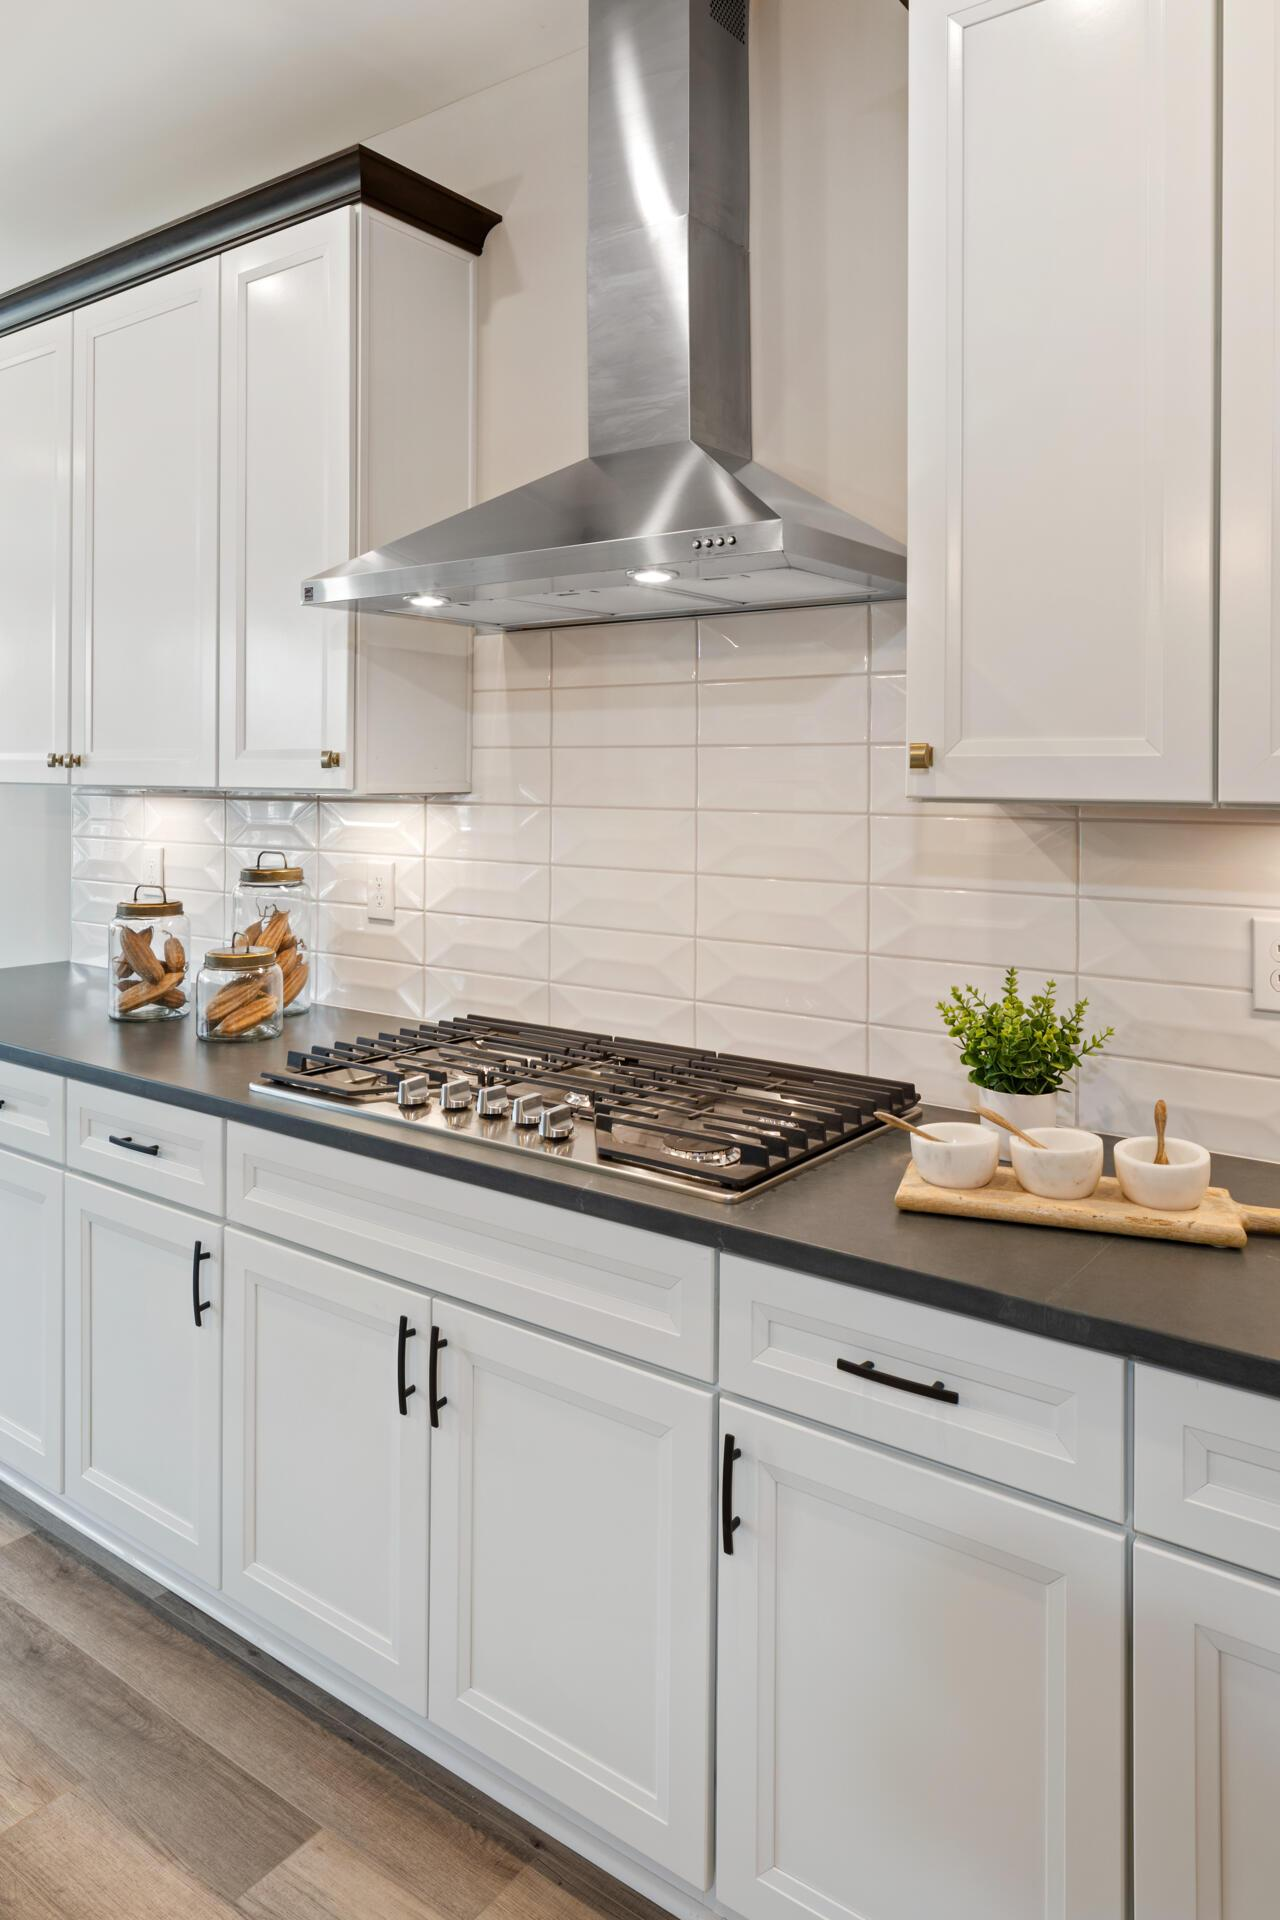 Kitchen featured in the Hialeah By Drees Homes in Cincinnati, OH